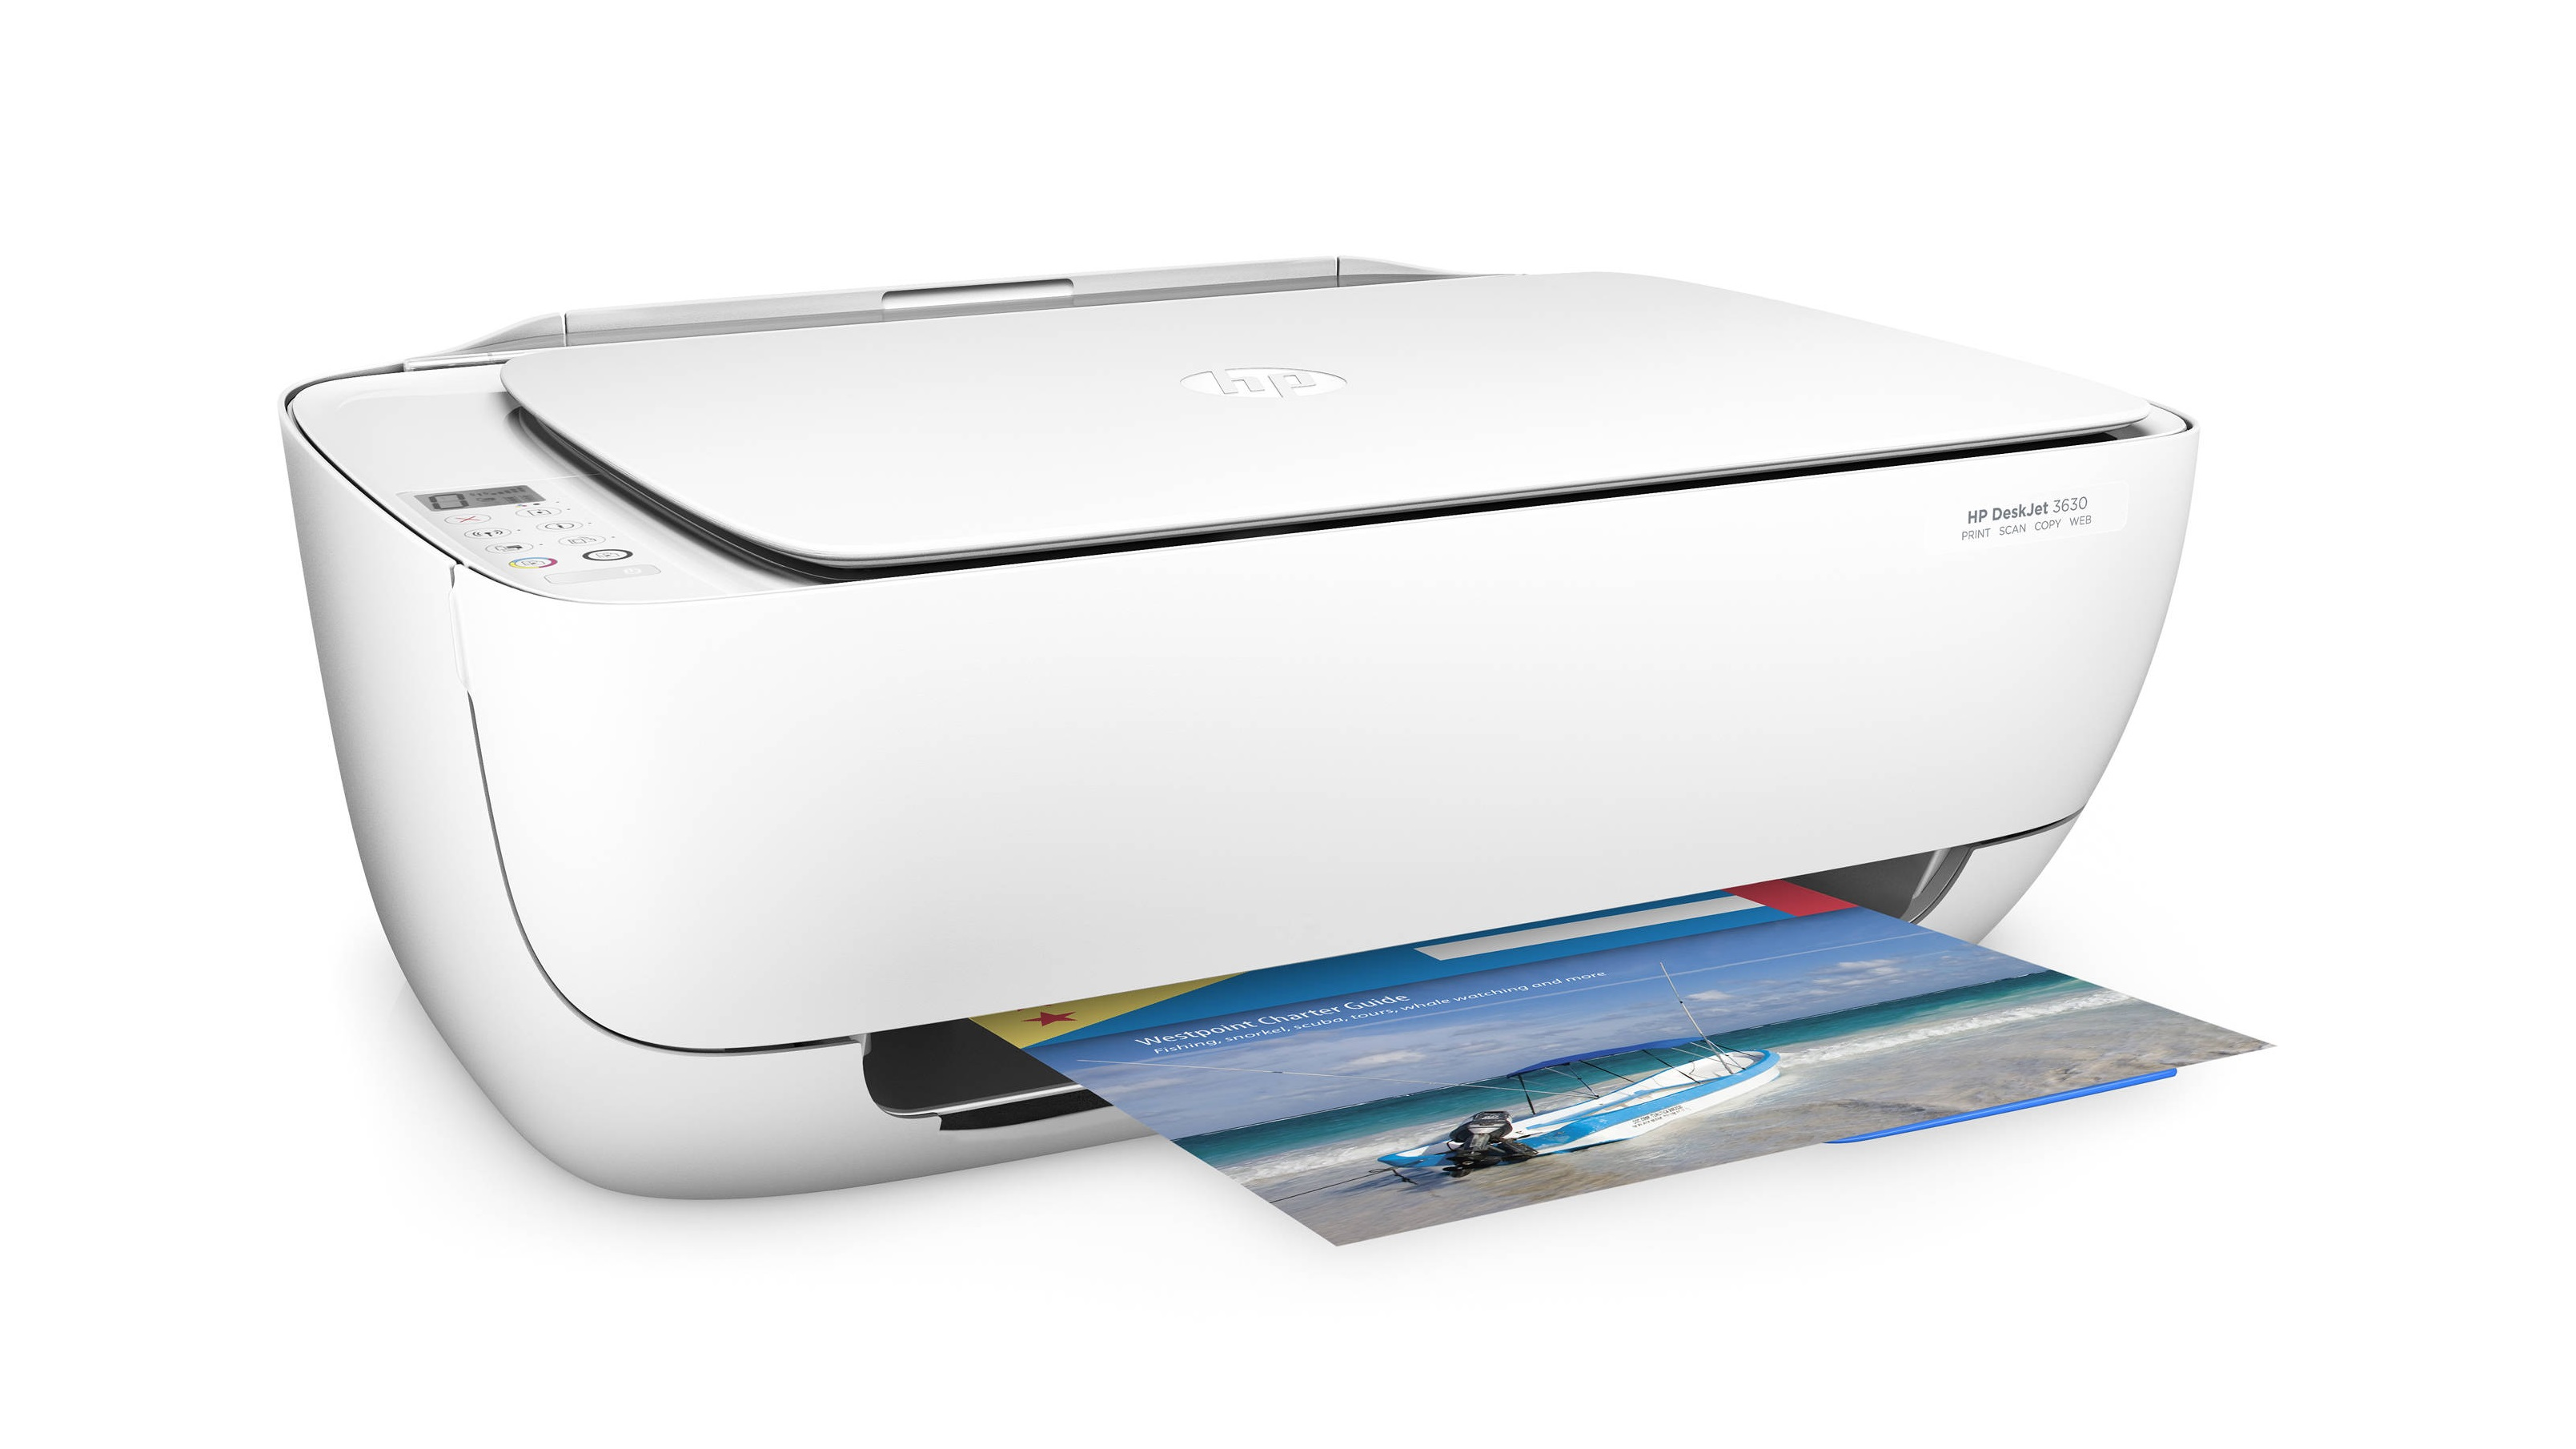 Best 4 In 1 Printer 2020 The best cheap printers 2019 deals: top budget picks | TechRadar